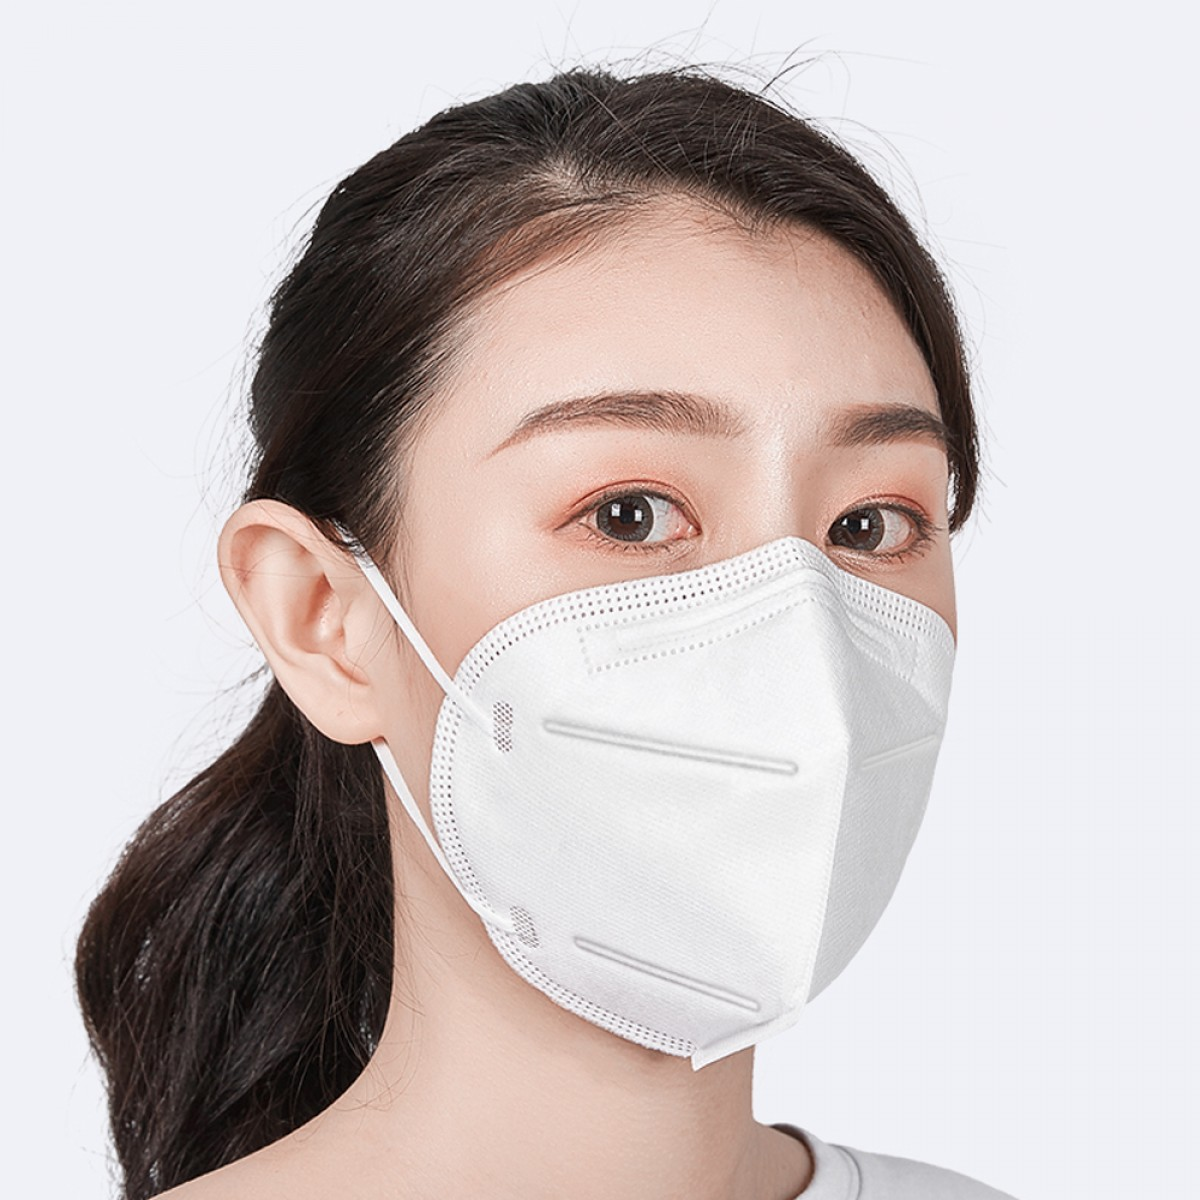 [Limited Supply] KN95 PARTICULATE RESPIRATOR 60 PCS